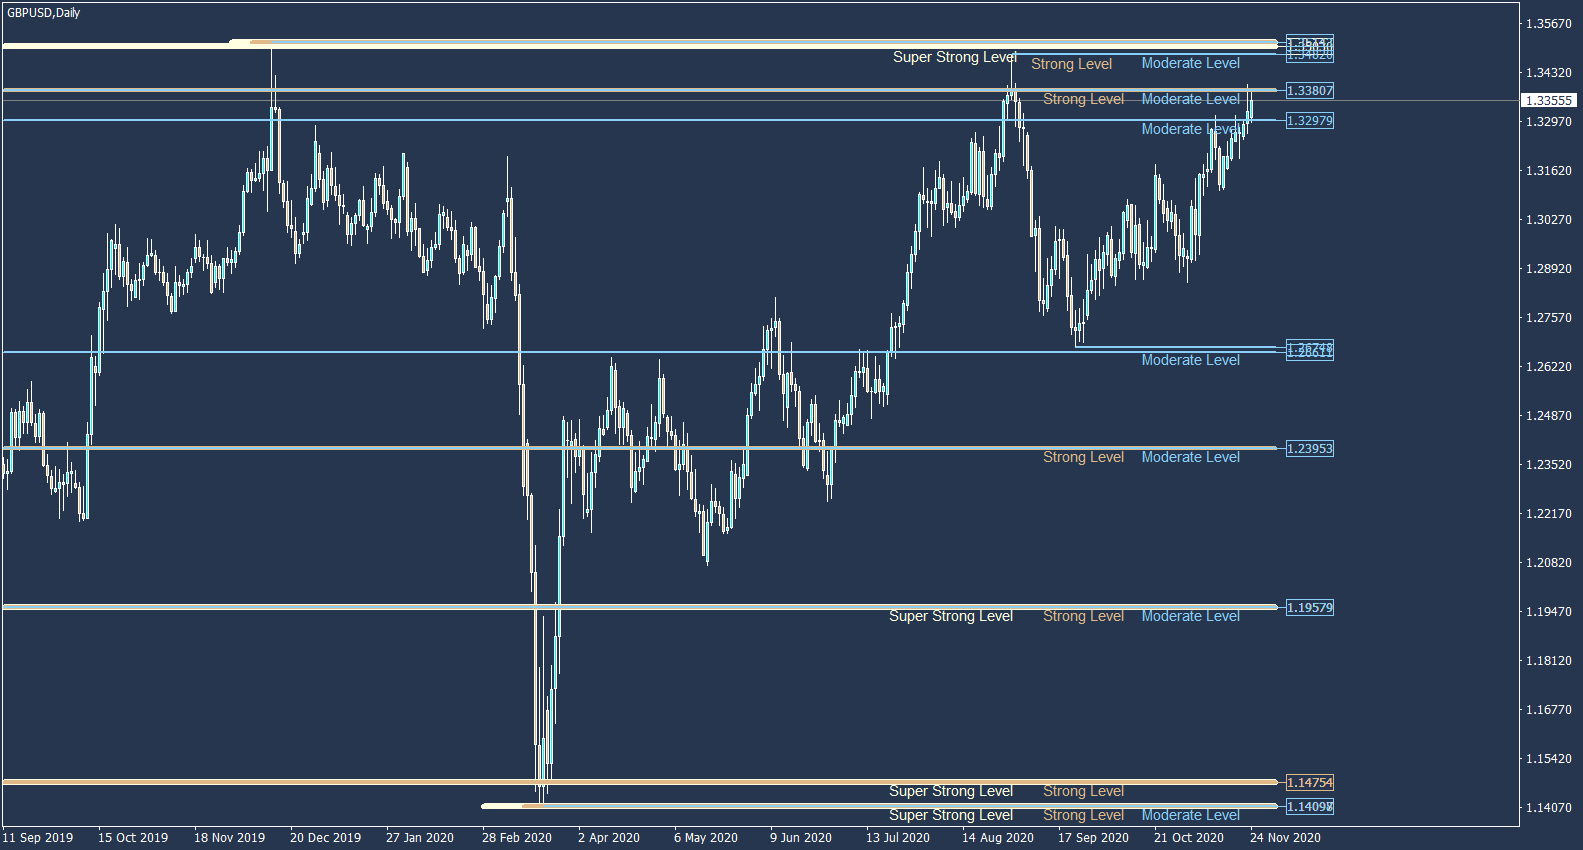 support resistance levels on gbpusd daily